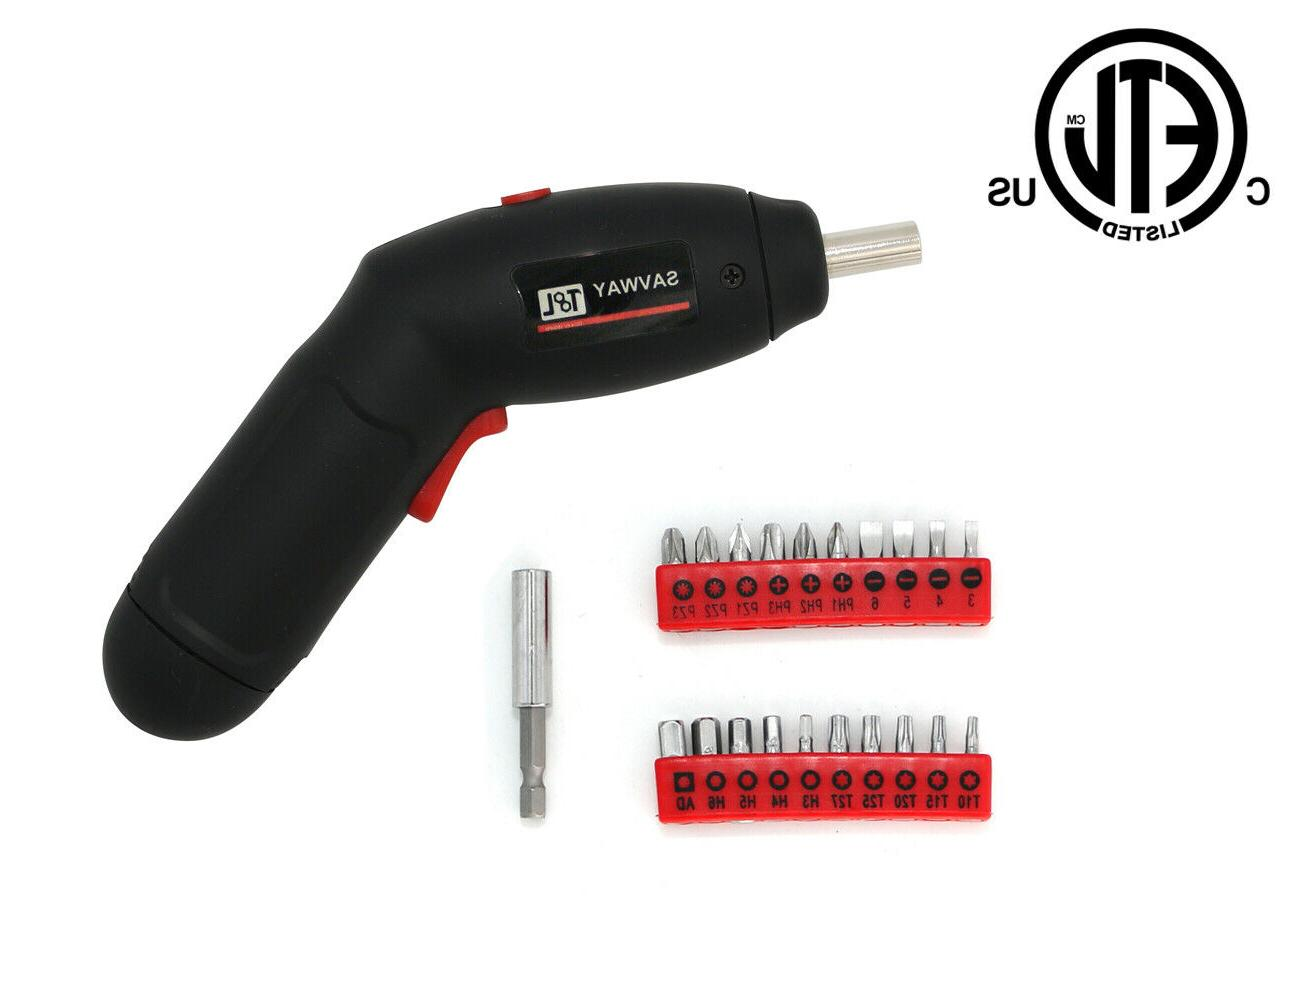 SAVWAY Rechargeable Drill Kit